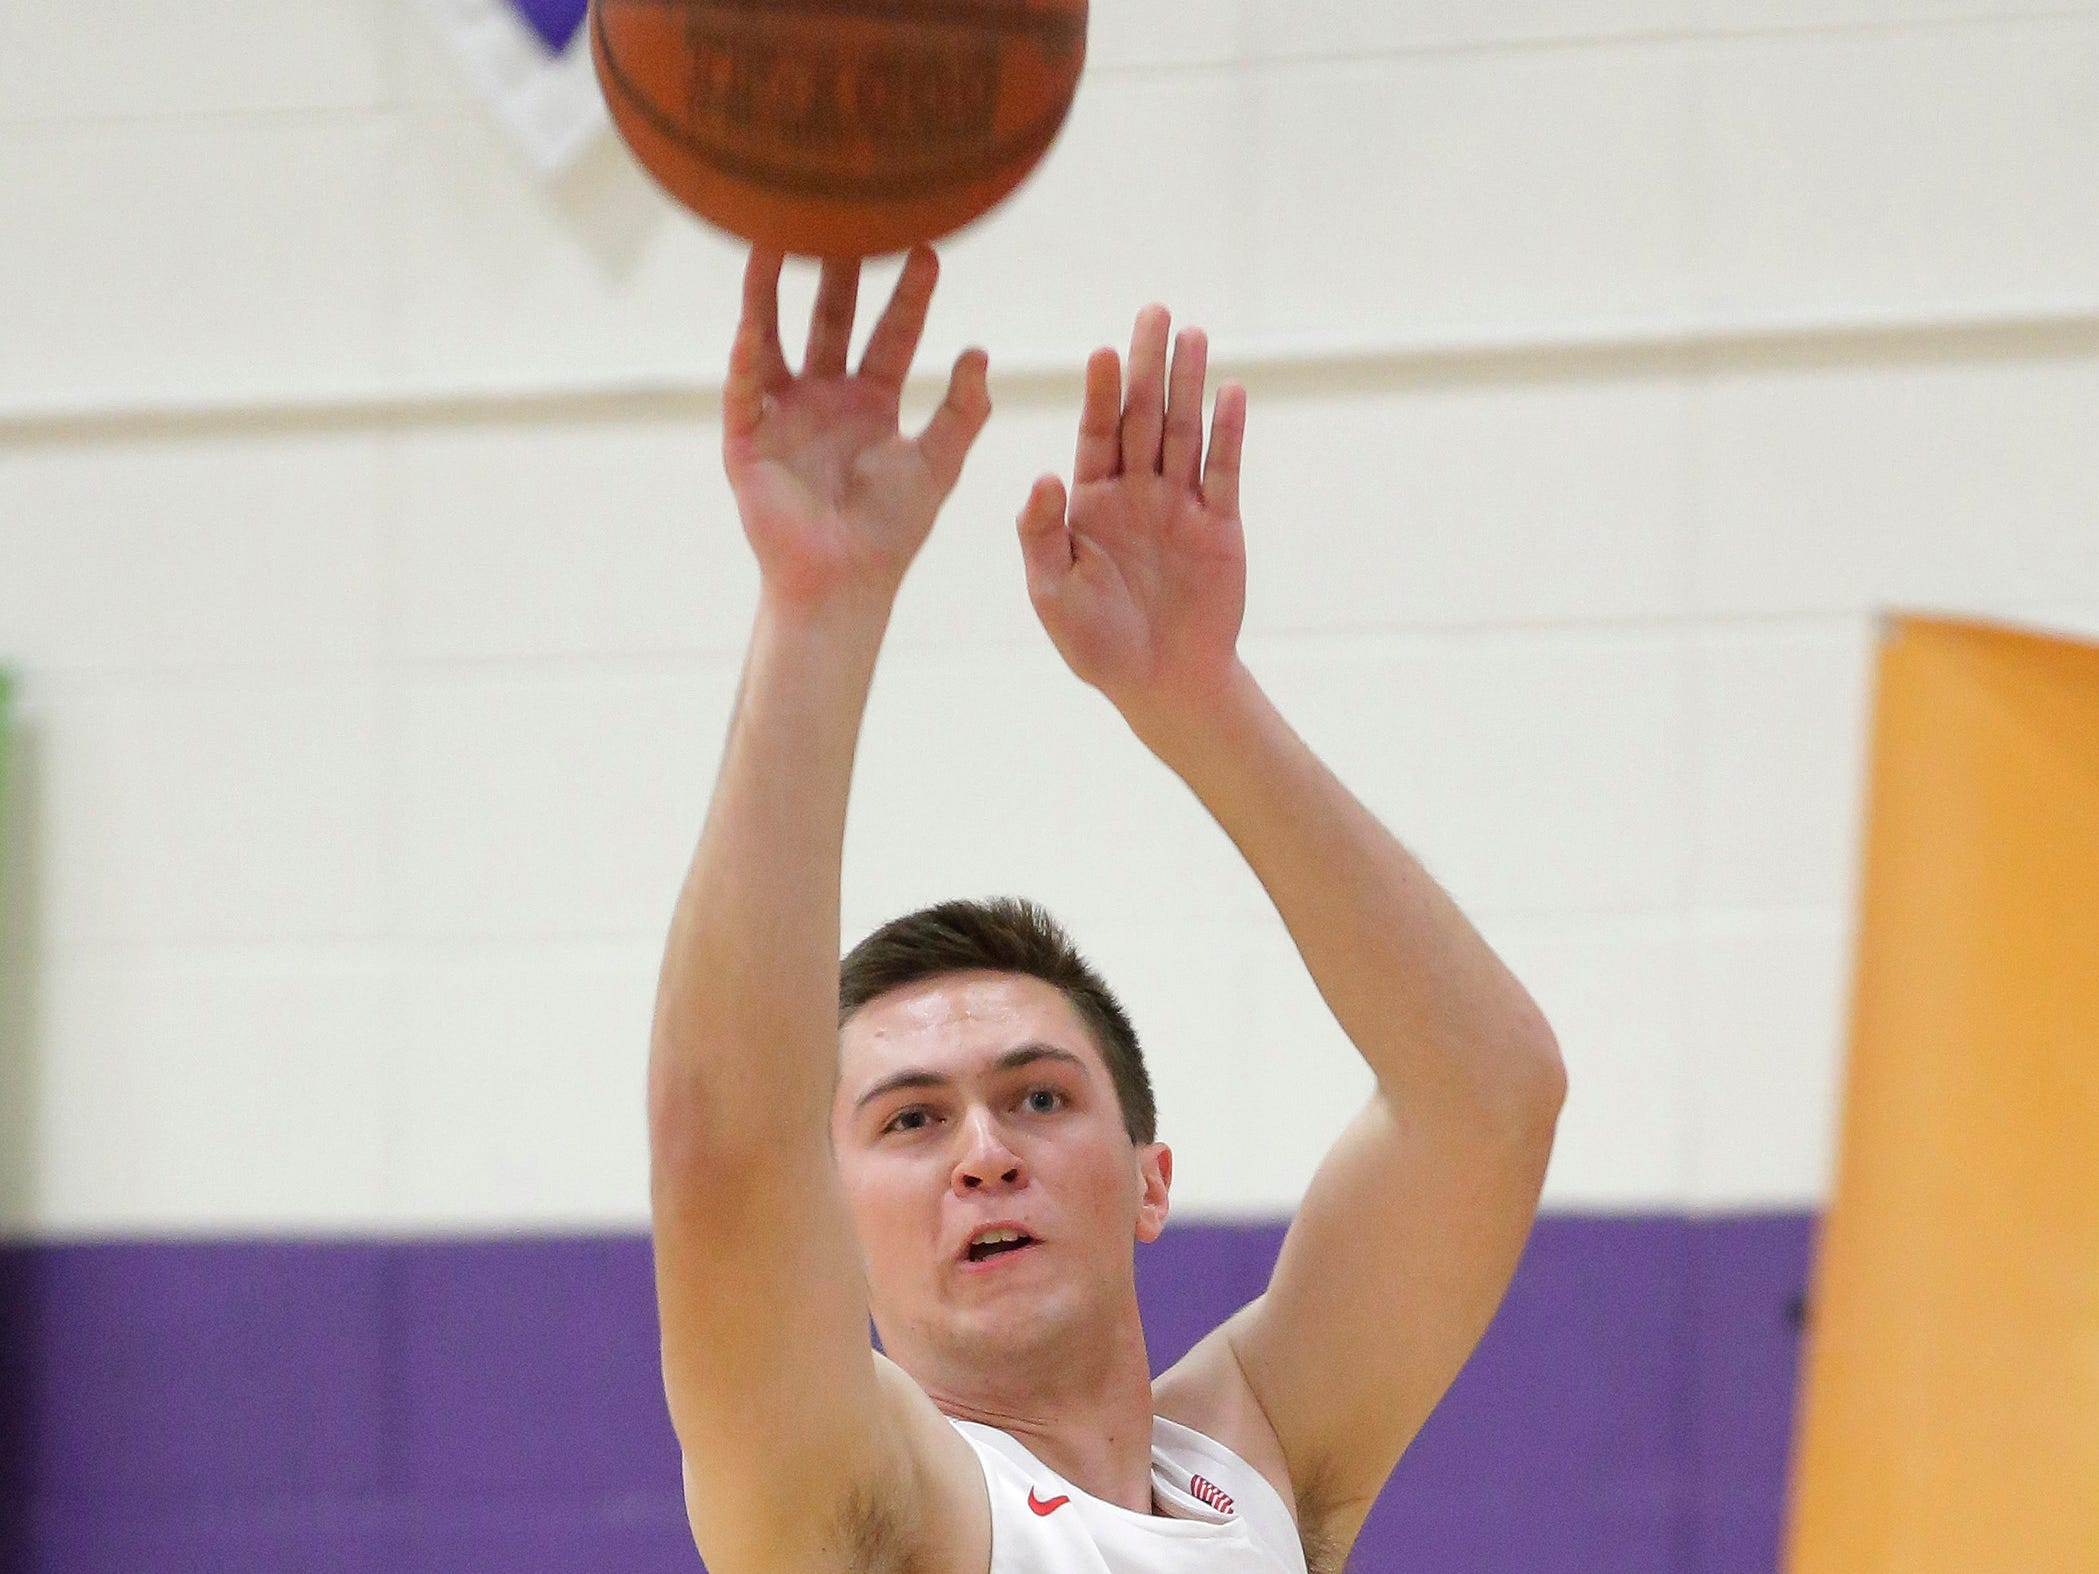 Sheboygan South's Nick Larson (20) aims a three point during the three-point contest before the Sheboygan Area Senior All-Stars game, at UW-Sheboygan, Sunday, April 7, 2019, in Sheboygan, Wis. Larson took top honors in the competition.